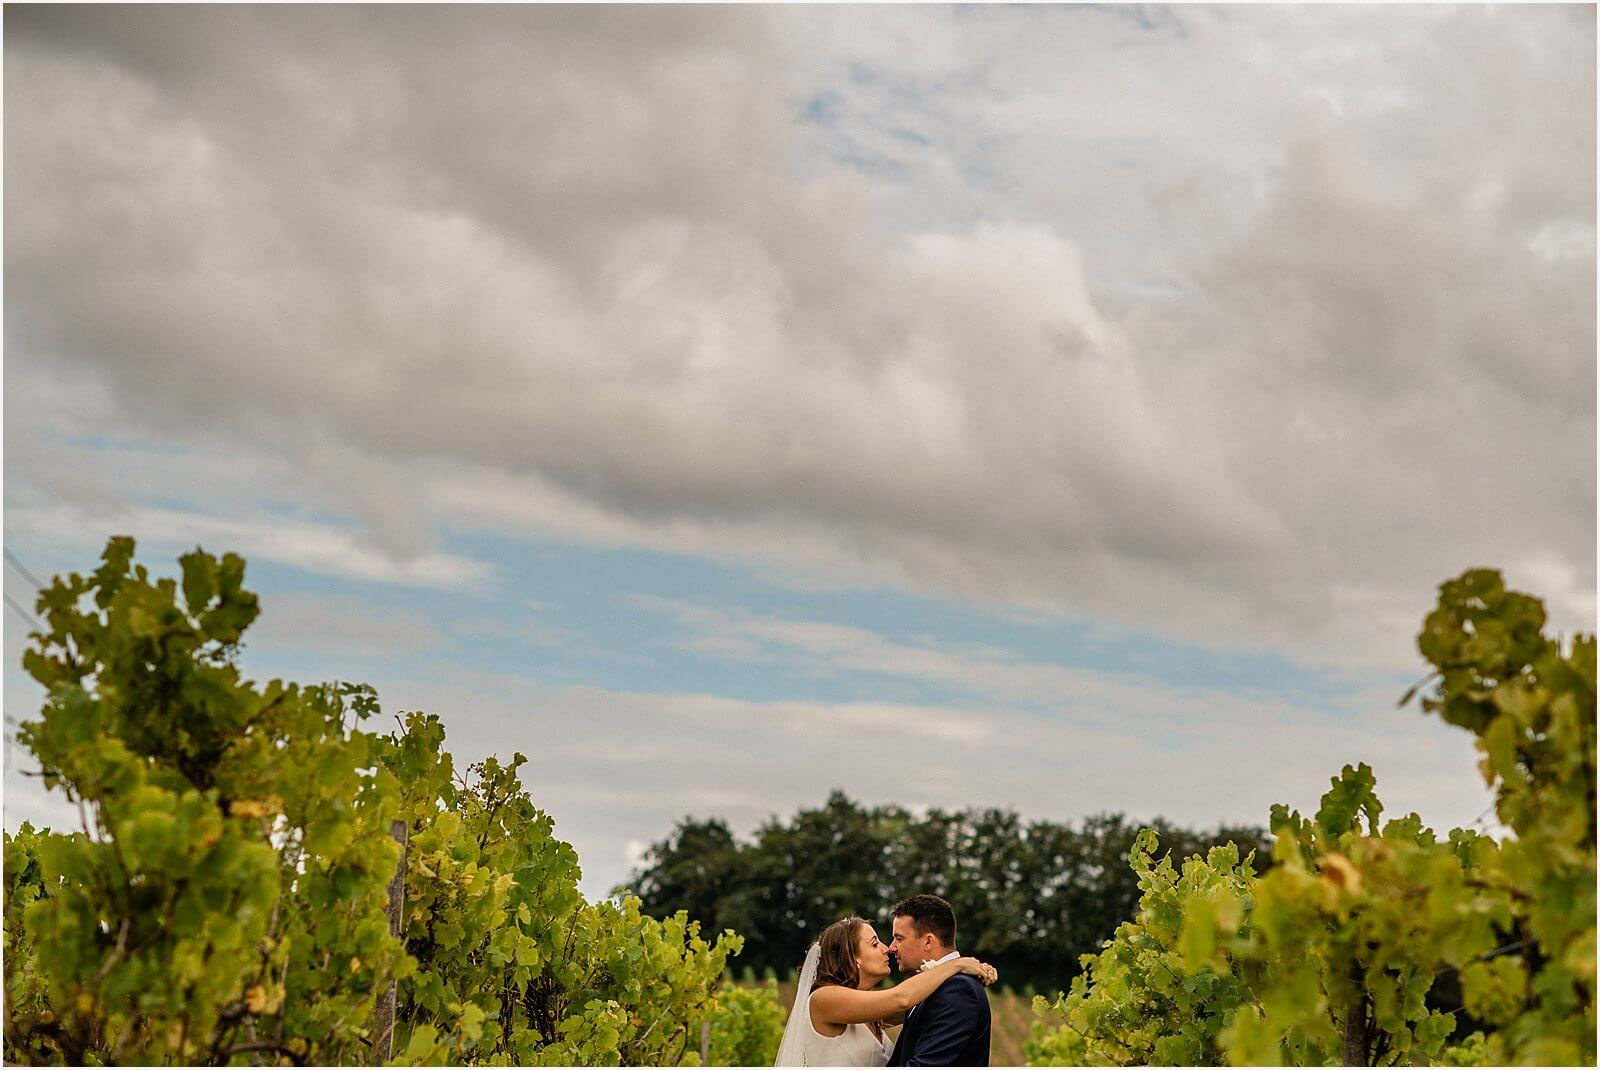 Wedding at Denbies Vineyard - charming wine estate wedding - wedding photography 49